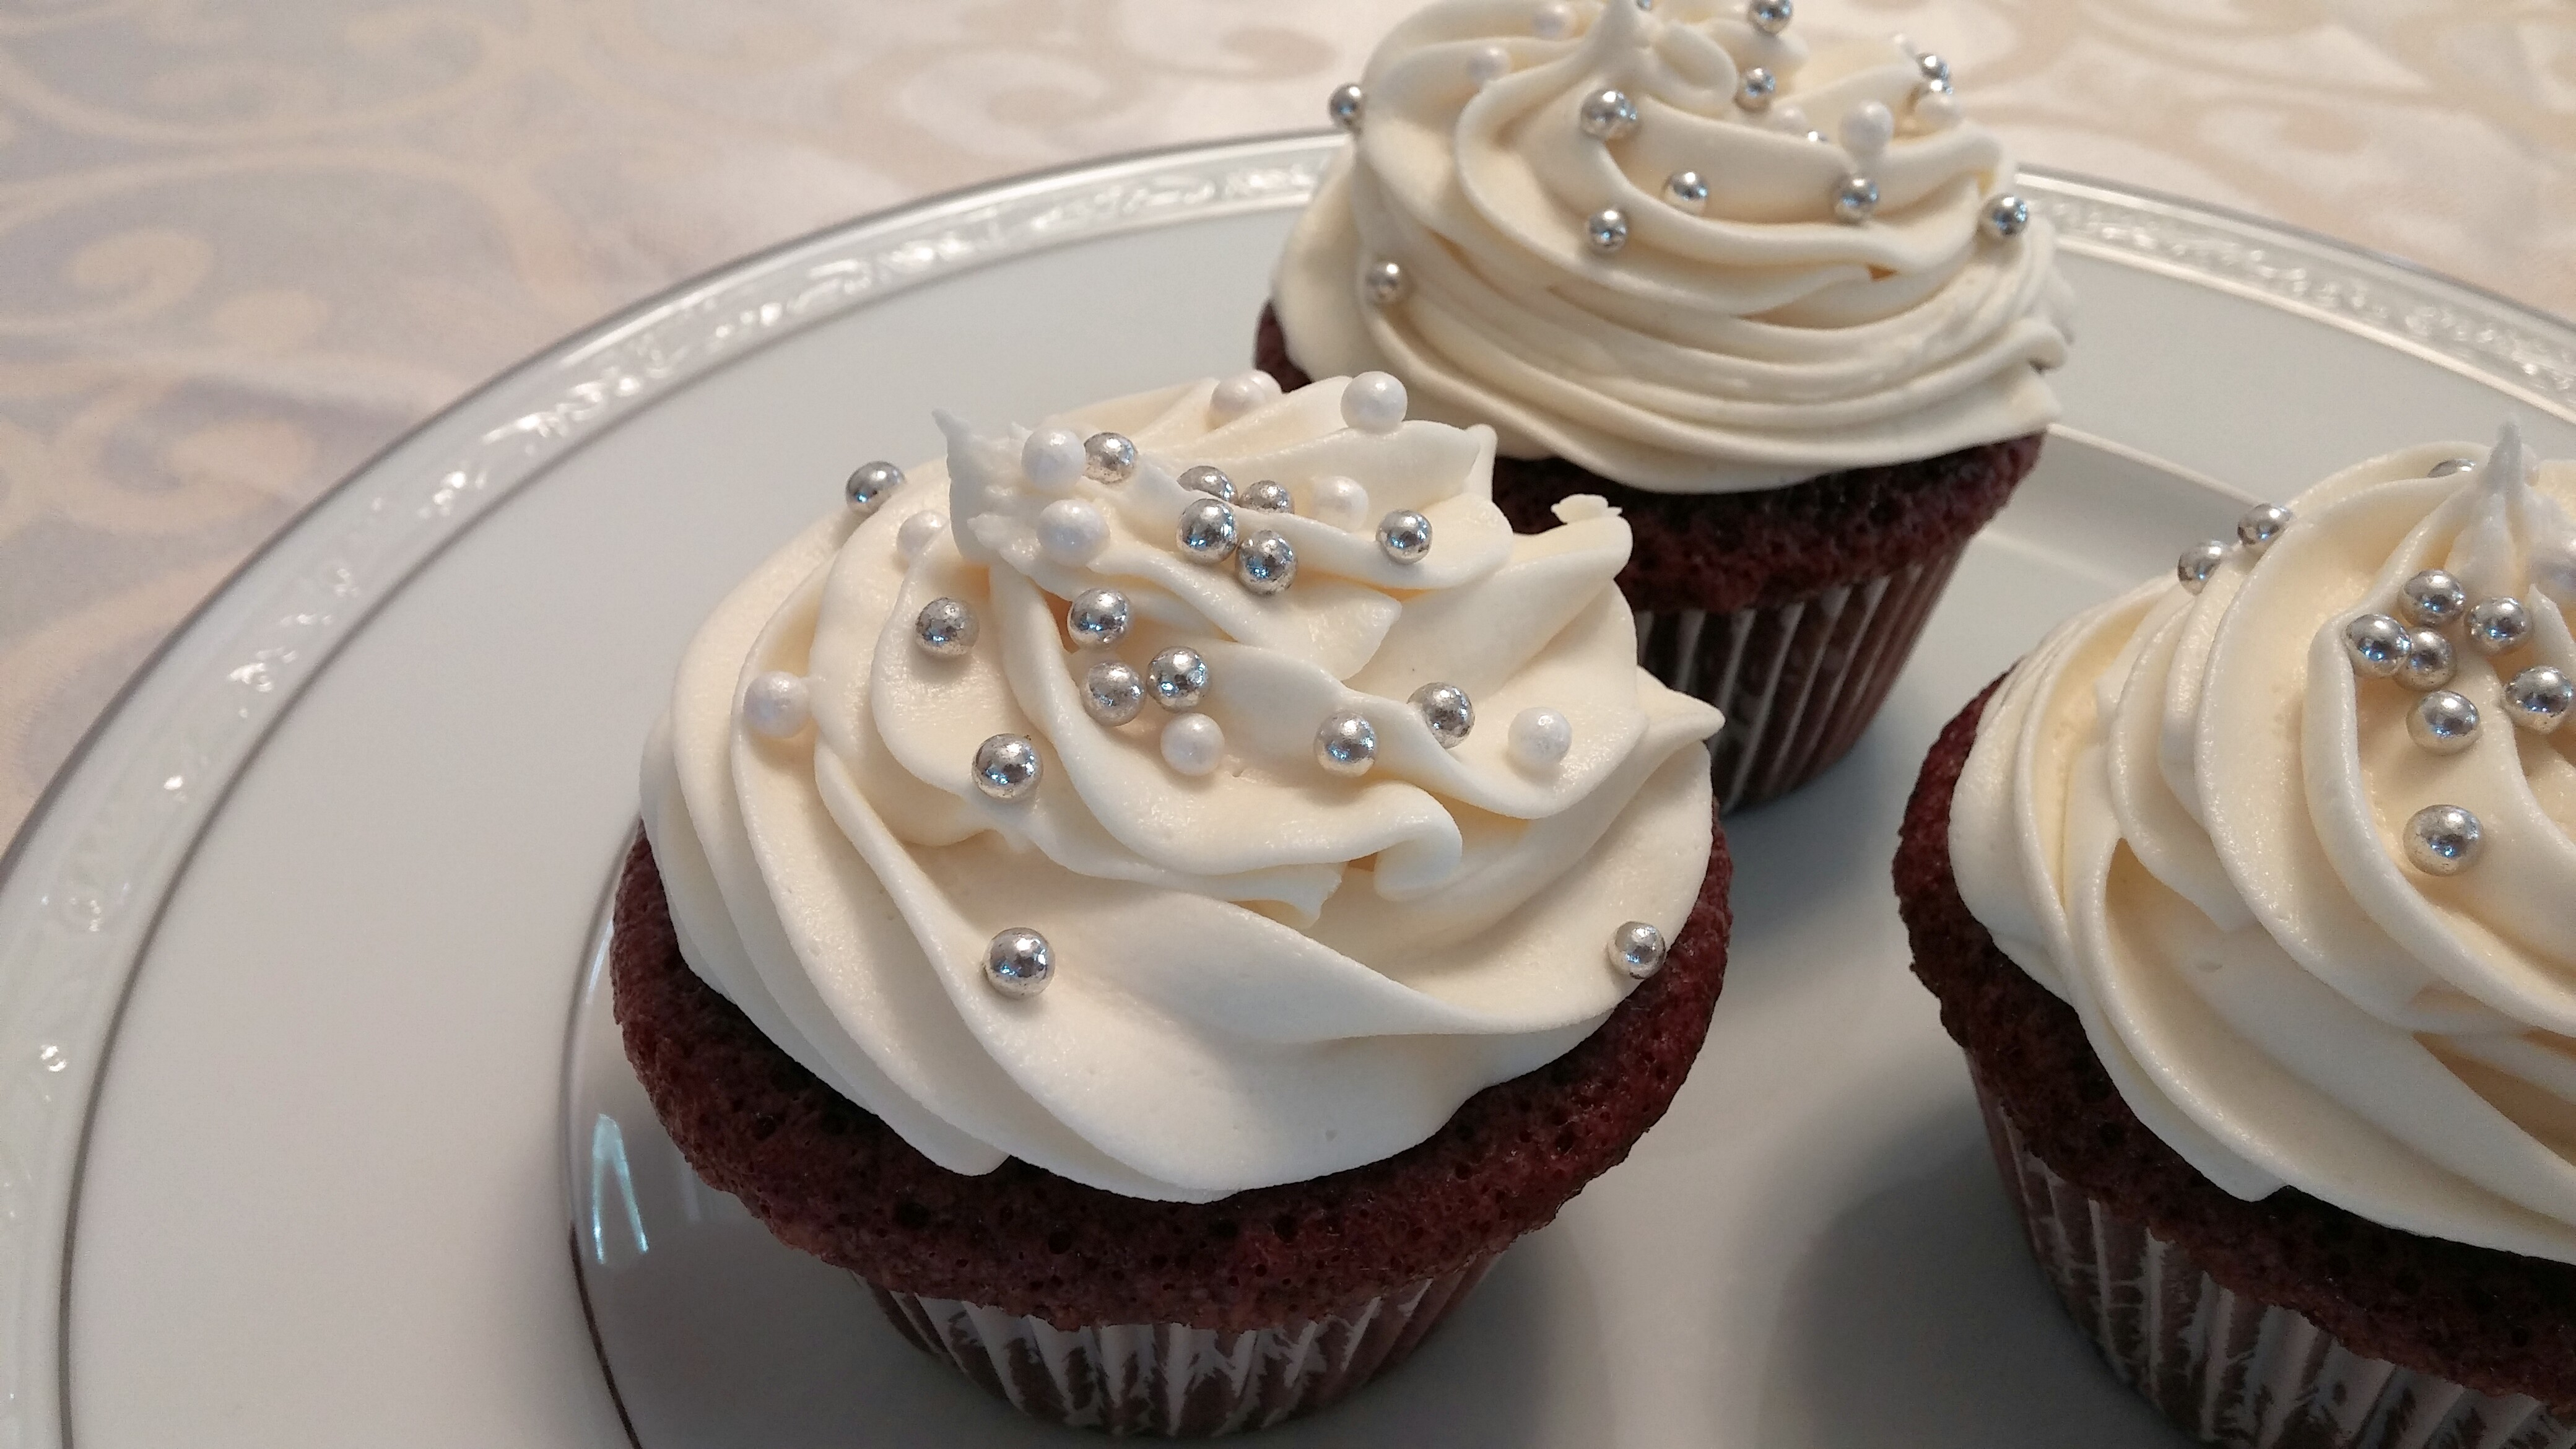 Cupcake with bling